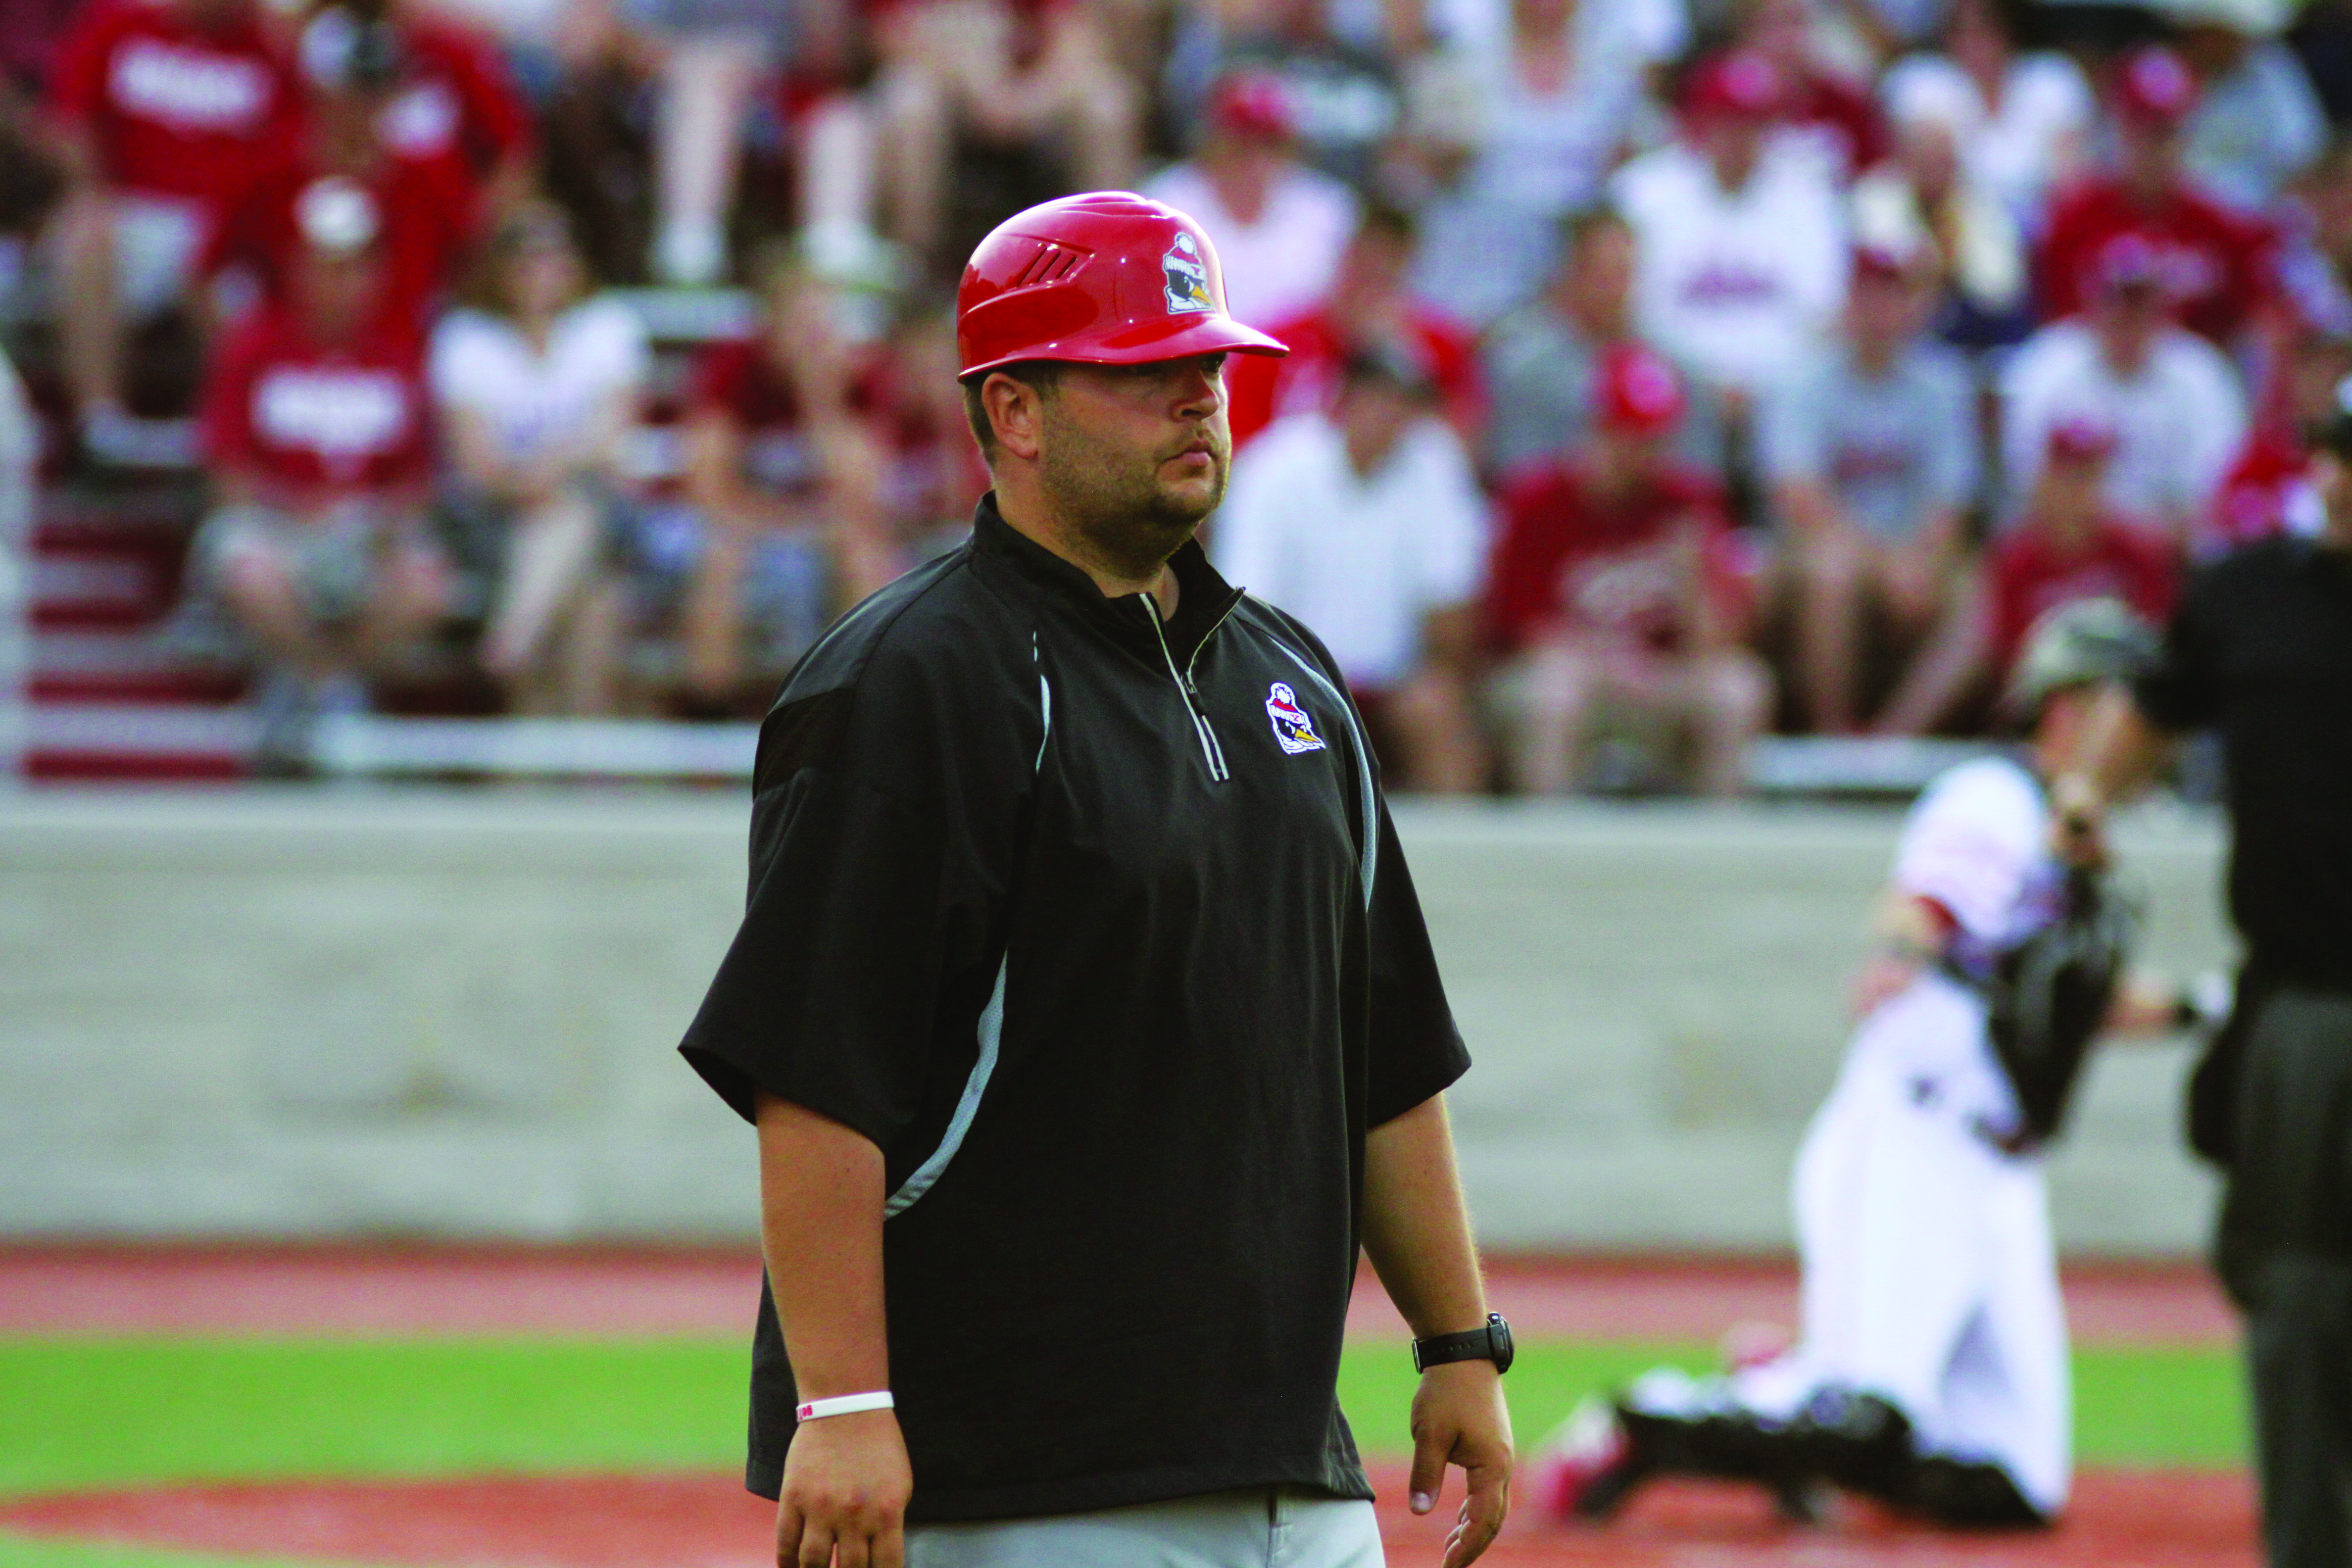 Jason Neal, assistant coach and recruiting coordinator, oversaw the recruitment of 16 of the players on the 2014 Horizon League Champion roster. The YSU baseball team recently received seven commitments for the 2016 season. Photo courtesy of YSU Sports Information.